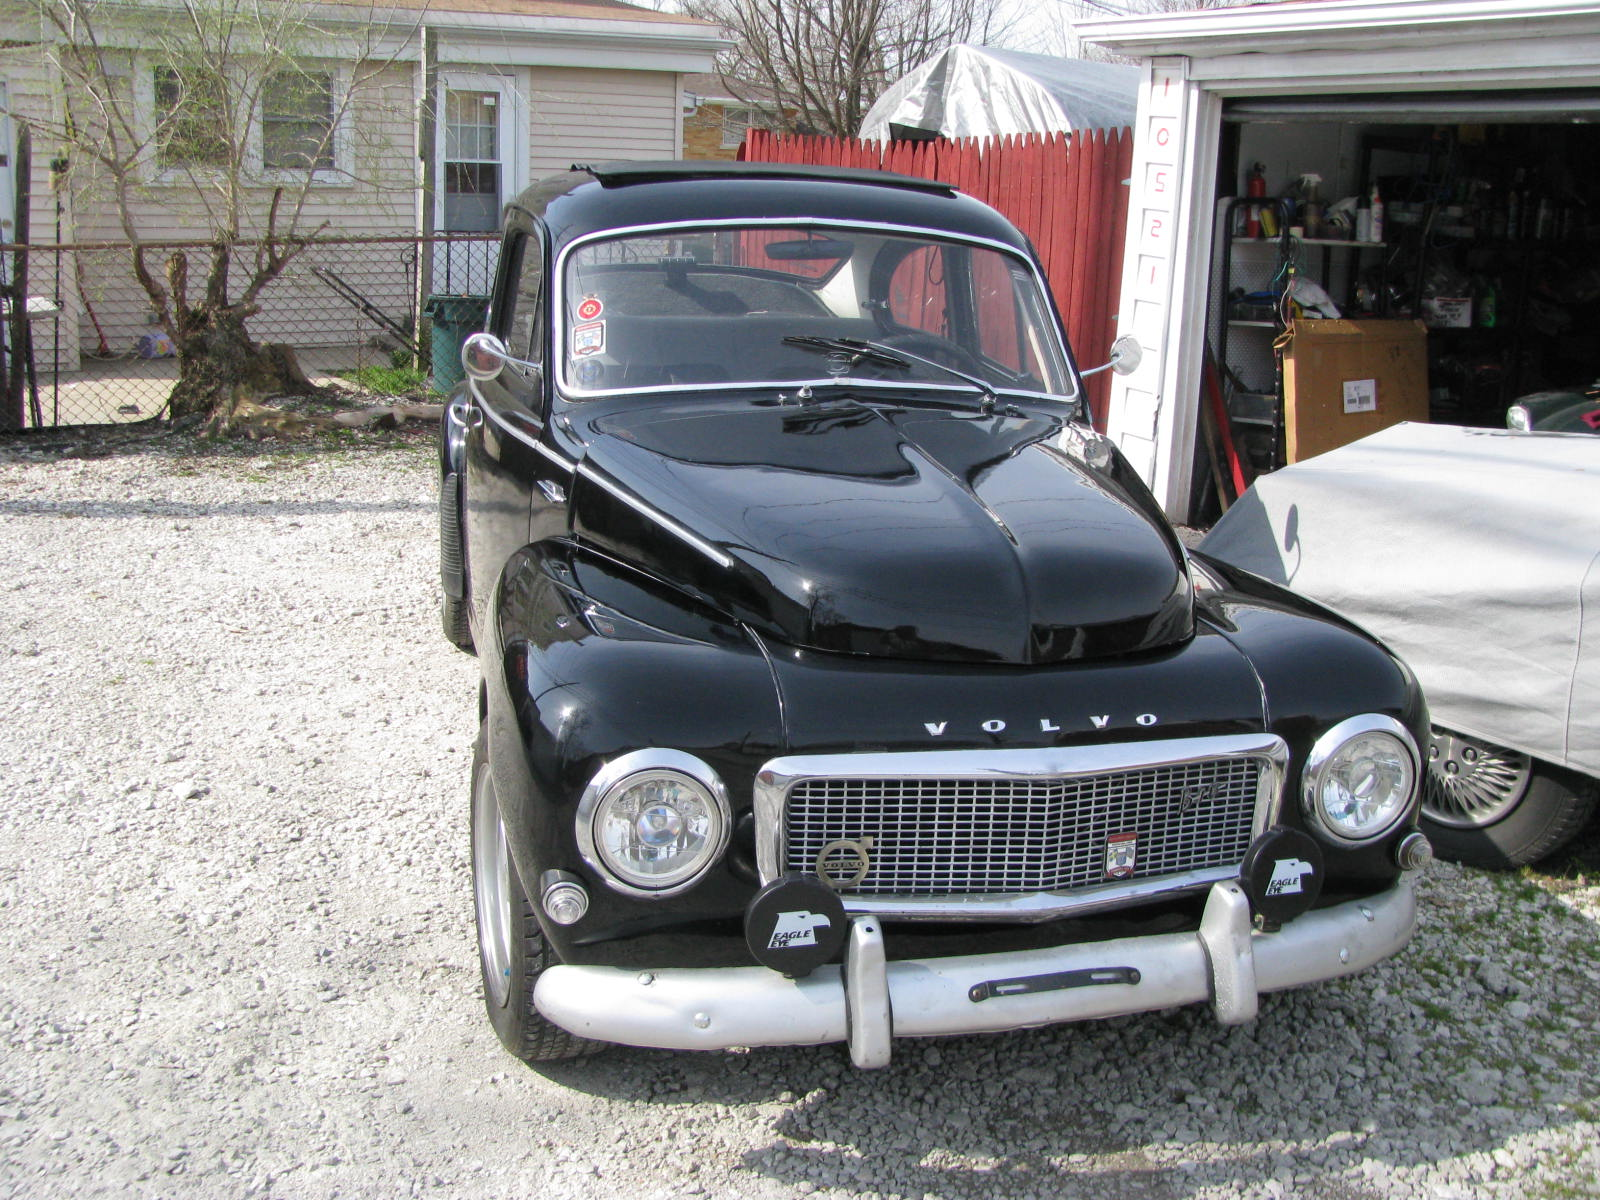 544 FRONT END WITH SLIDING RAGTOP - 19068885